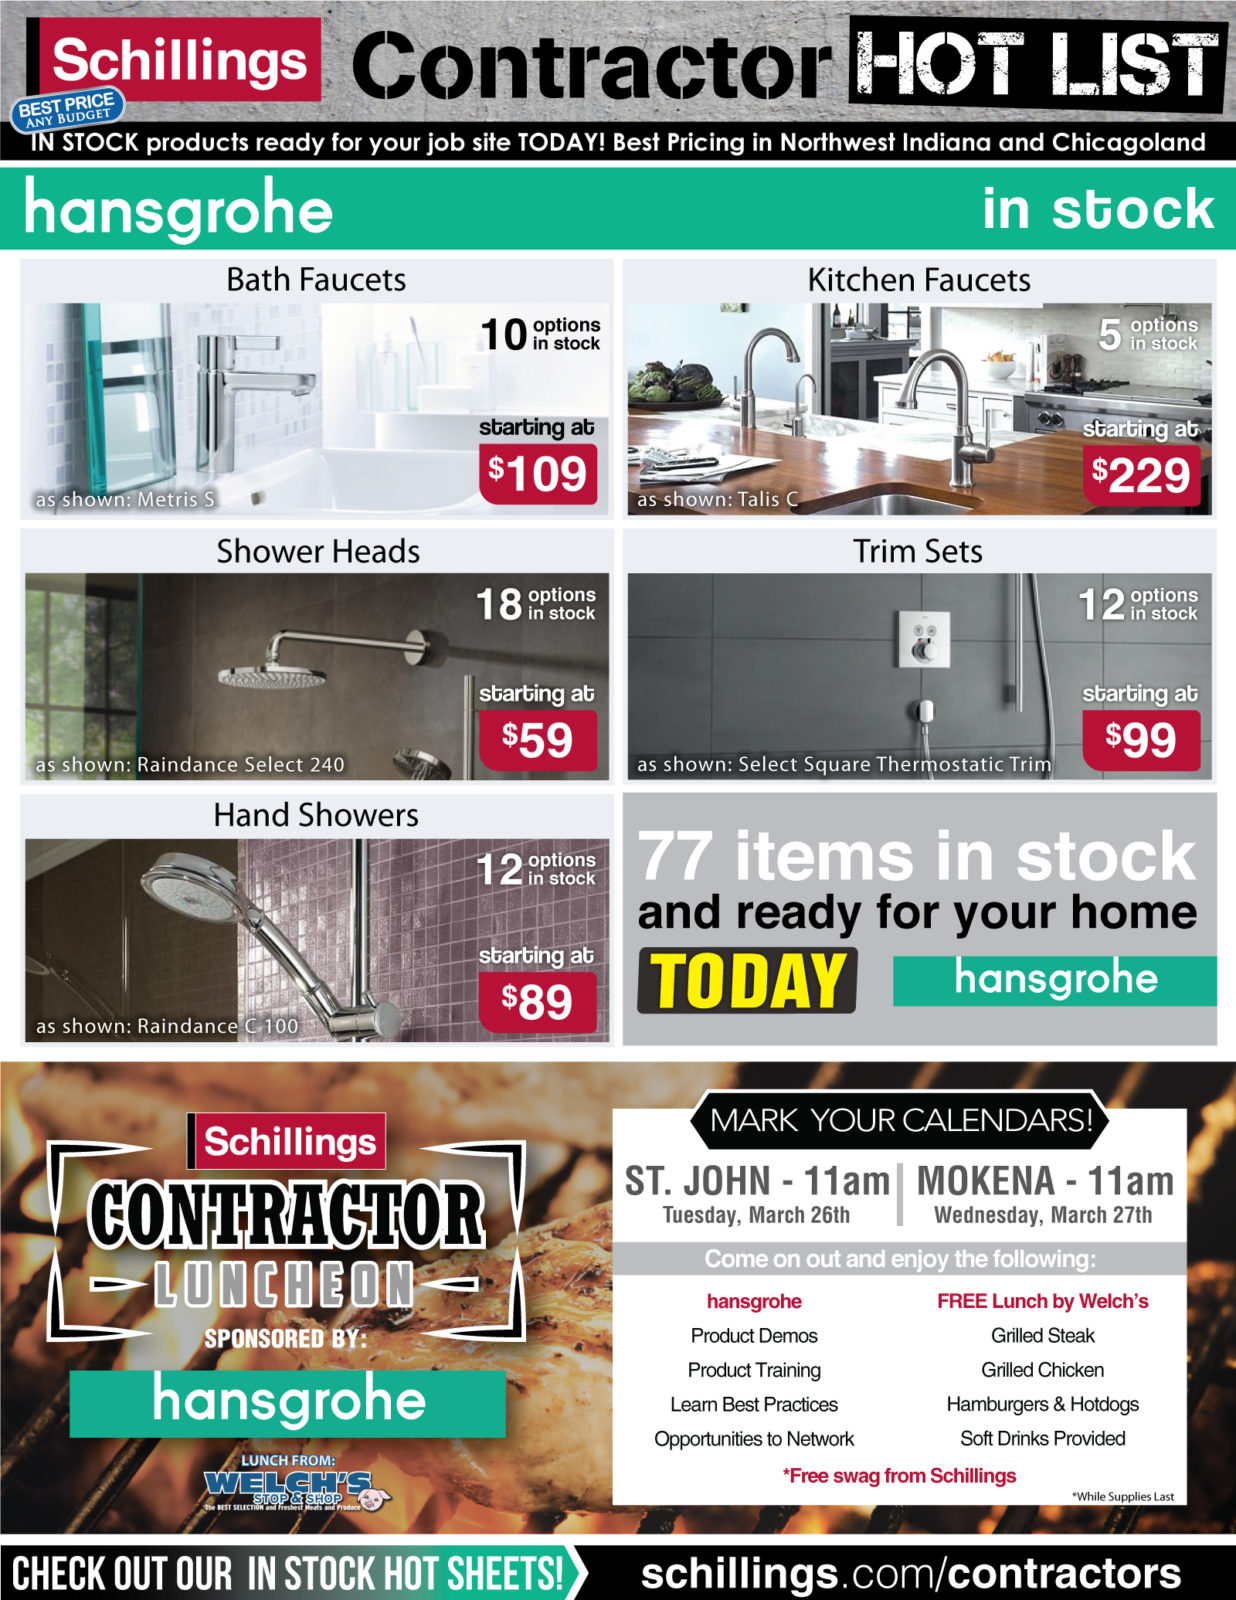 March-Contractor-Hot-list-Hansgrohe-JPG